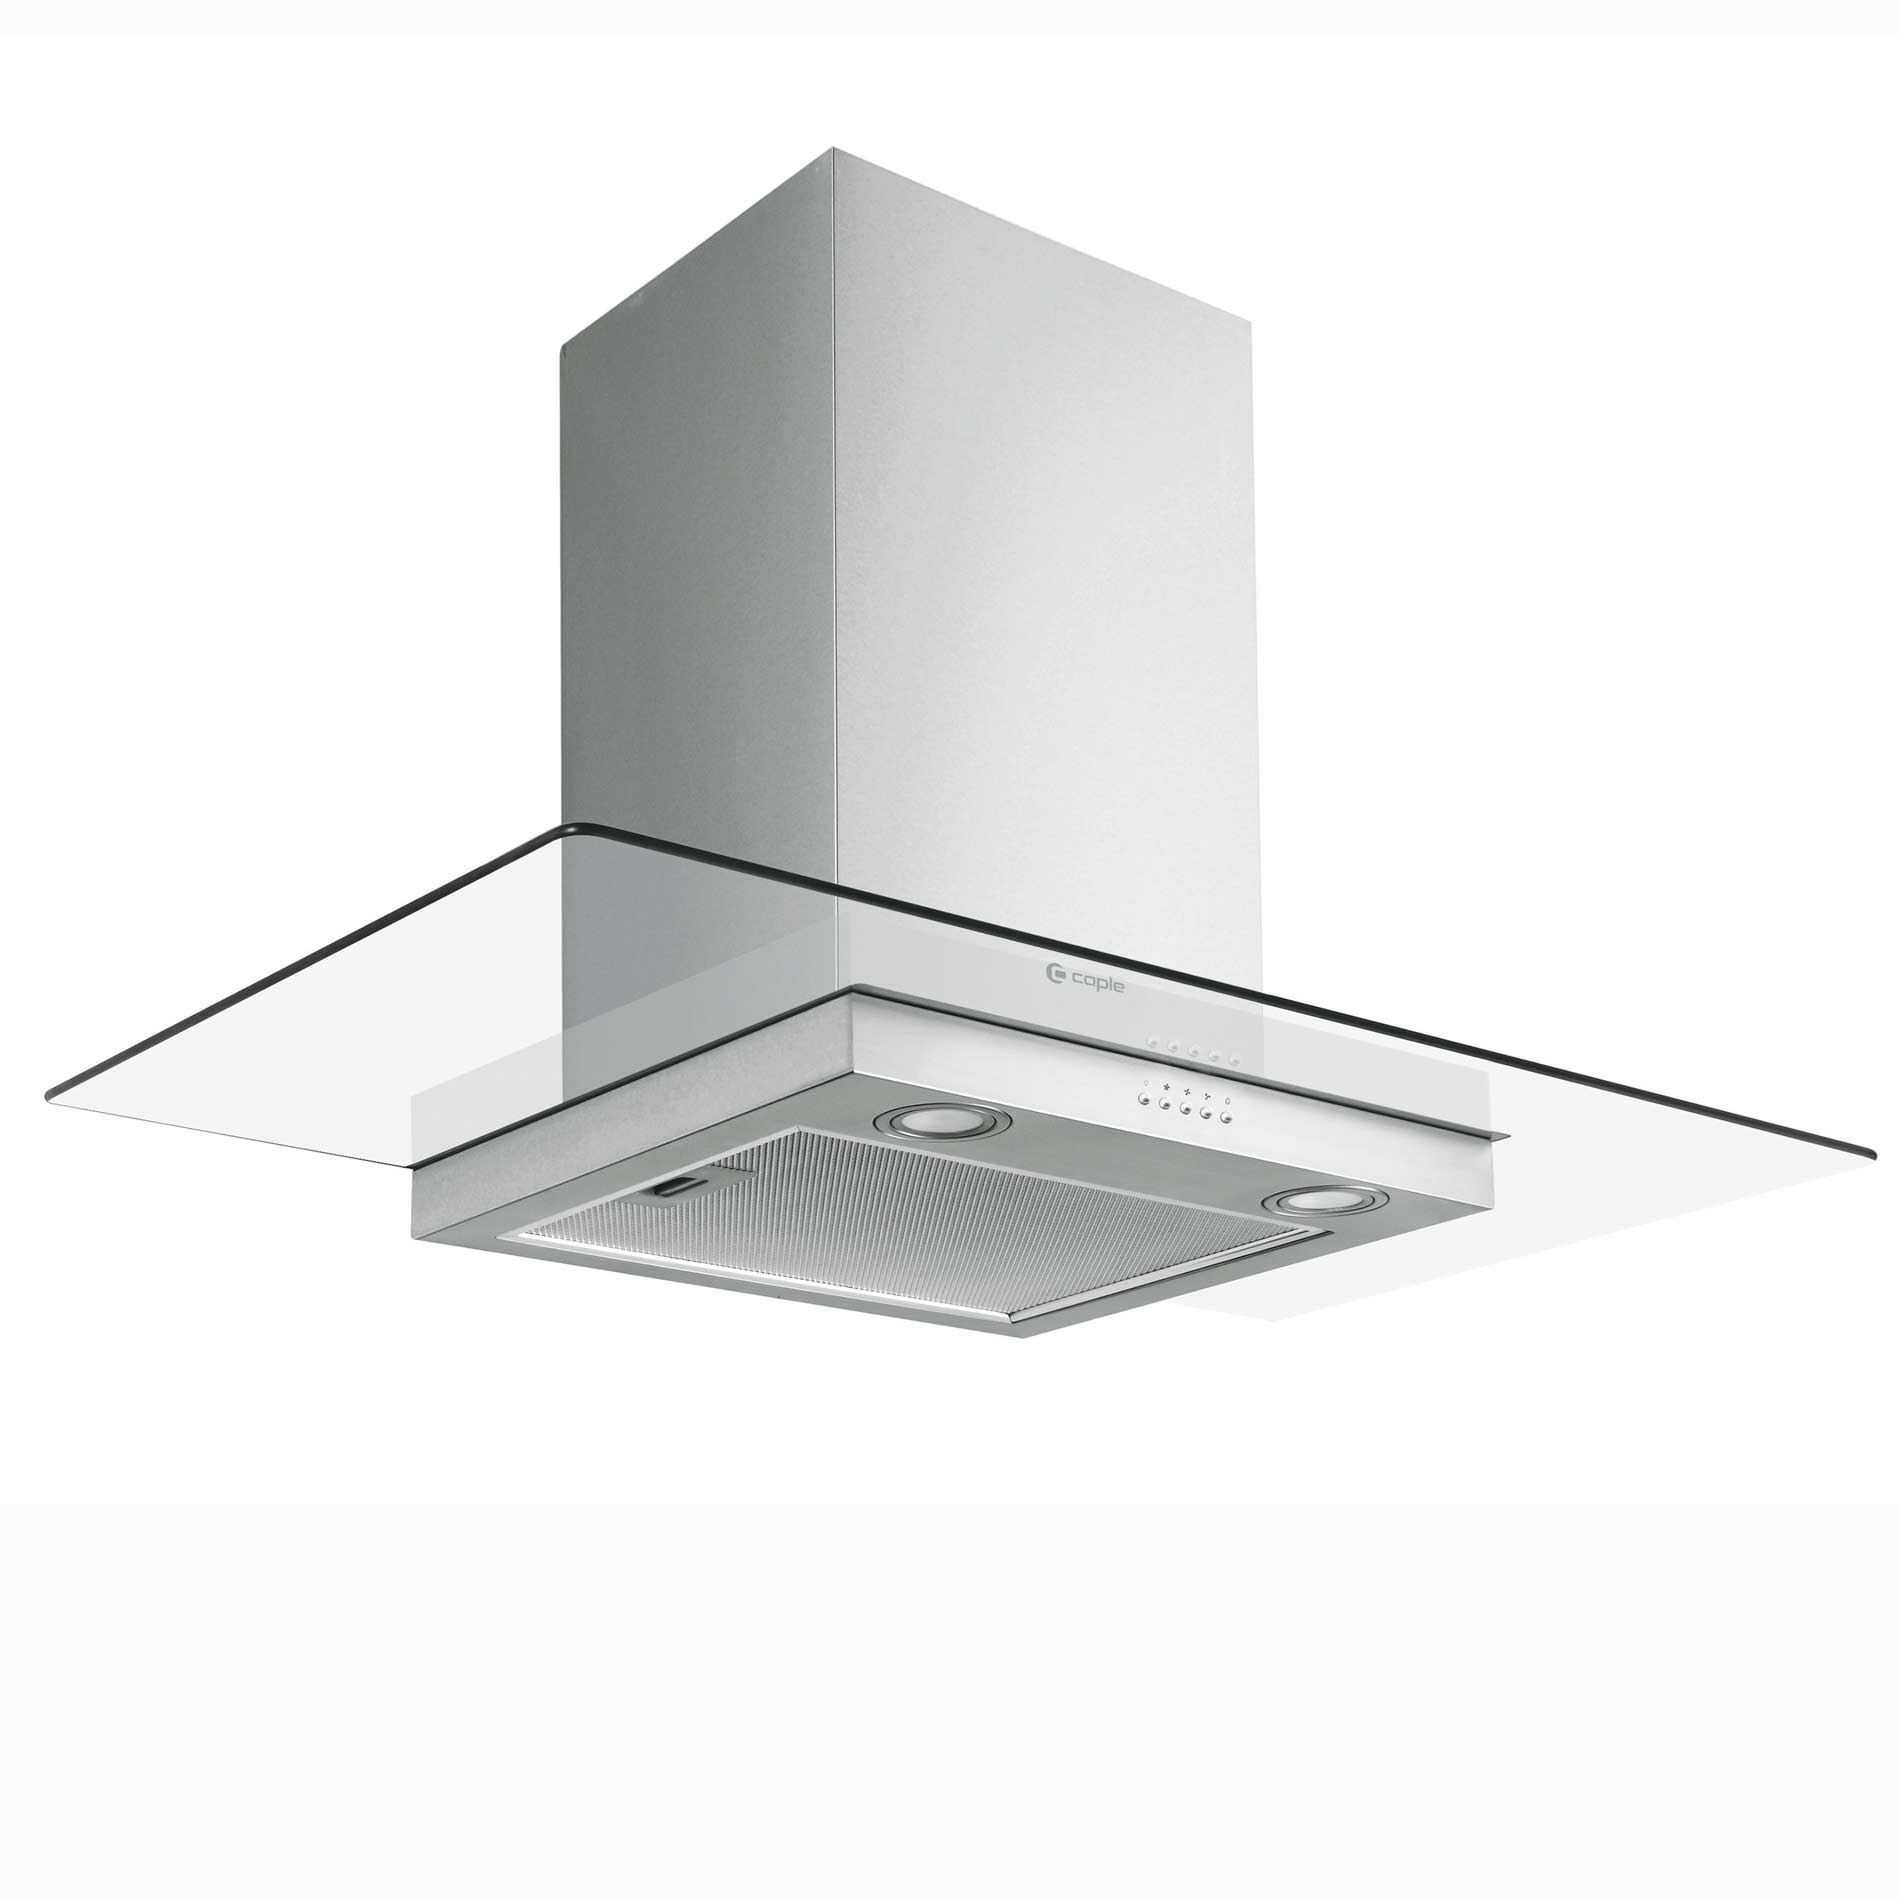 Picture of FGC920 Chimney Cooker Hood